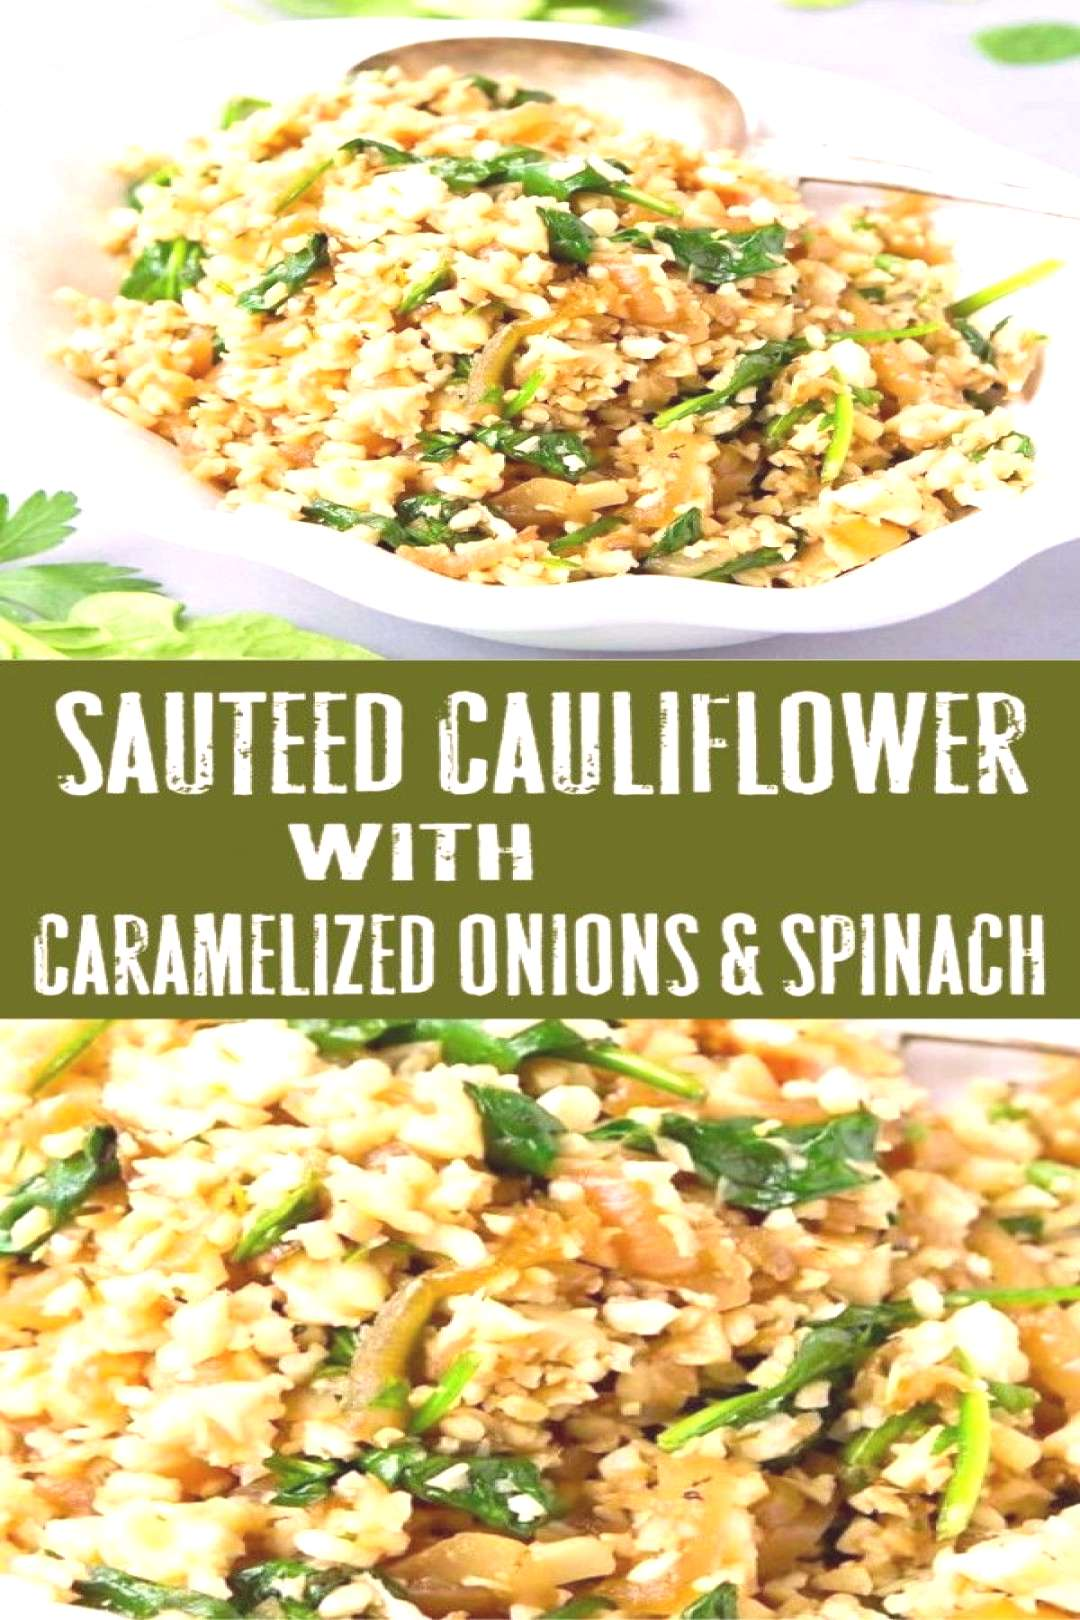 Sauteed Cauliflower Rice with Caramelized Onions amp Spinach#caramelized